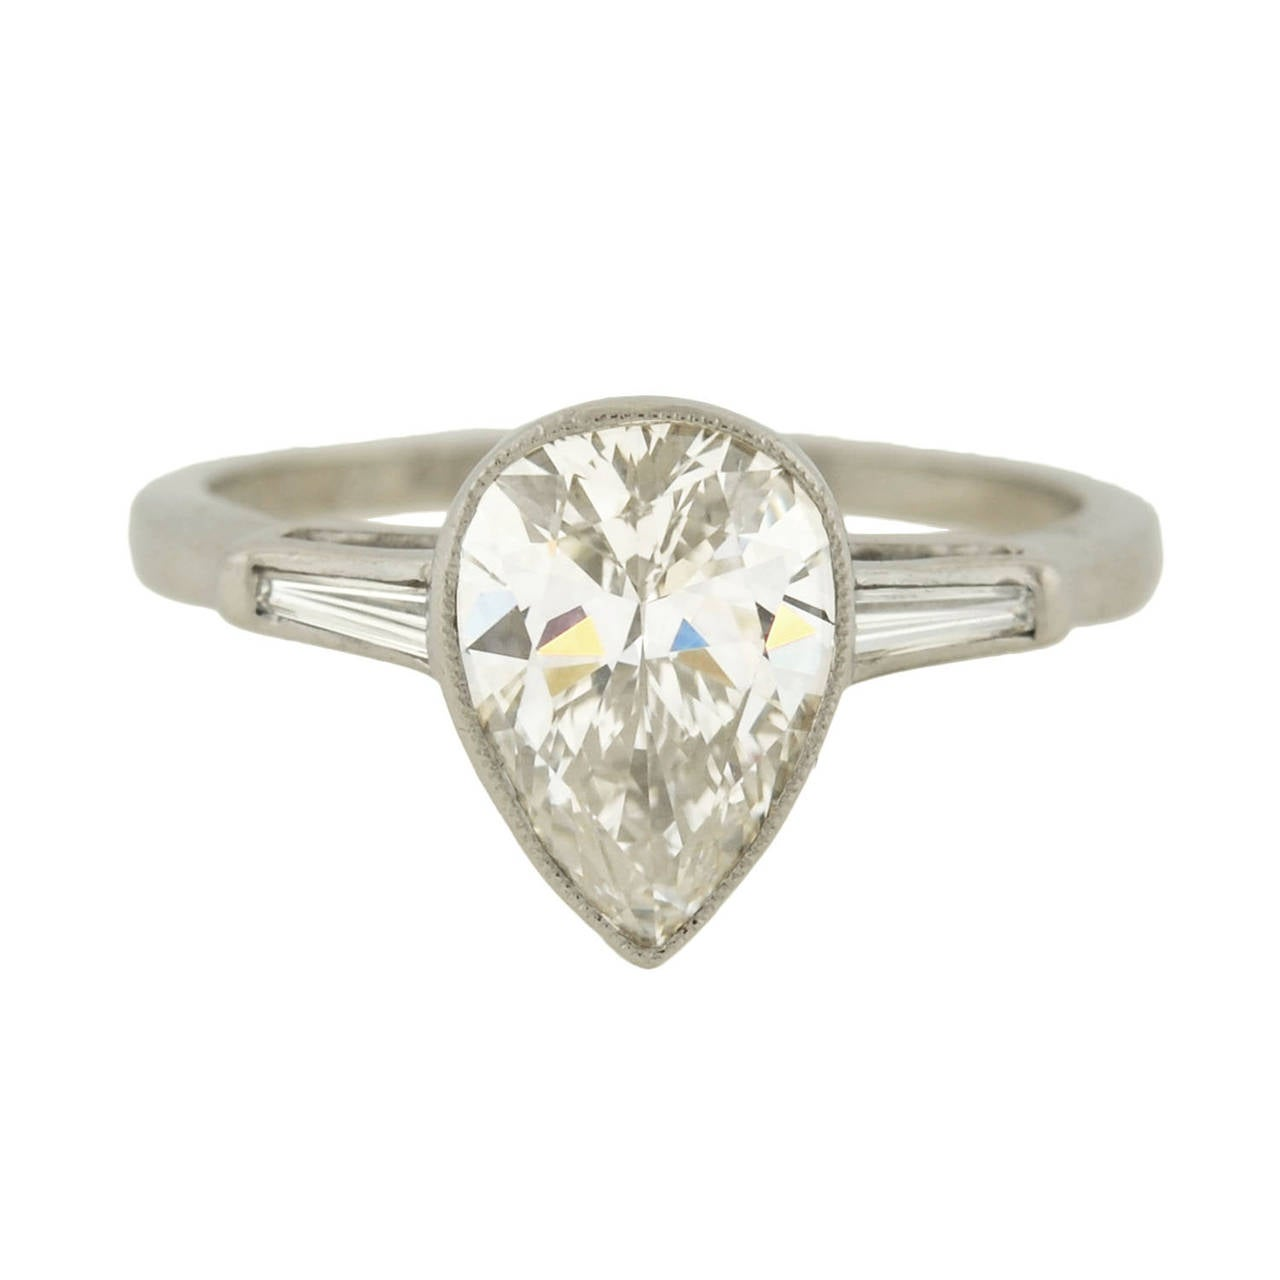 Retro Pear Cut 2 00 Carat Diamond platinum Engagement Ring at 1stdibs